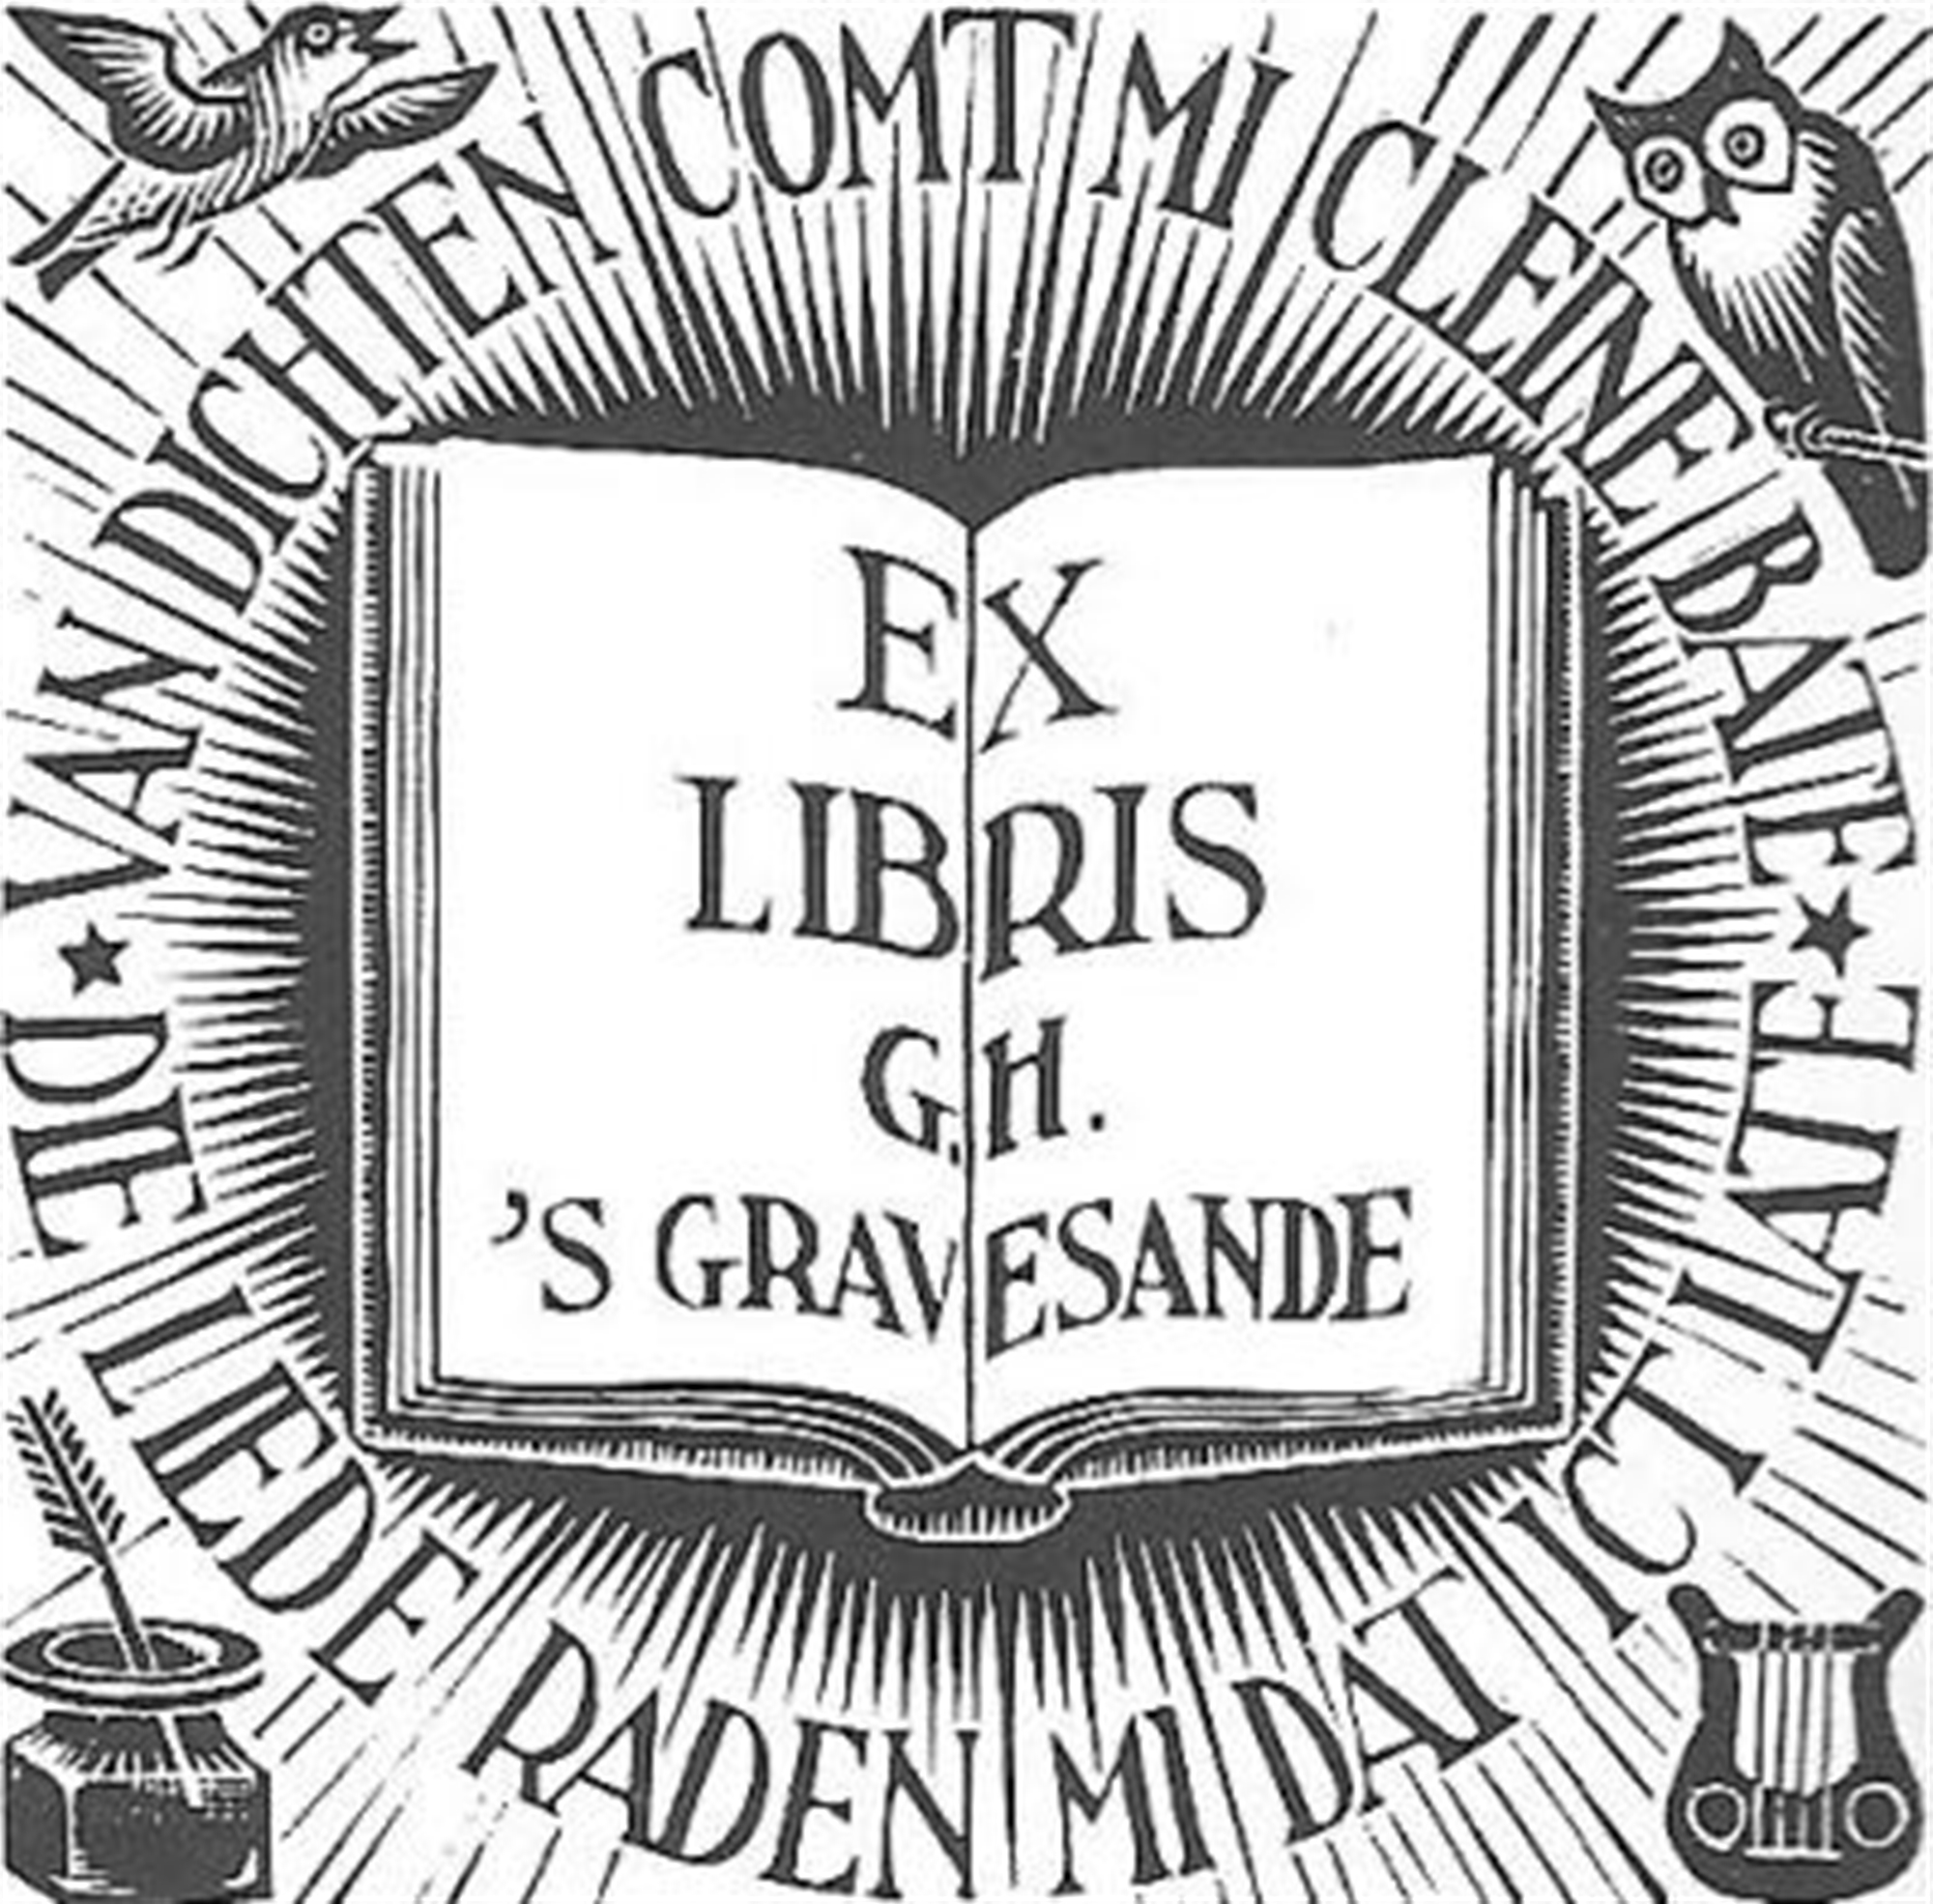 Bookplate G.H.'s- Gravesande by M.C. Escher